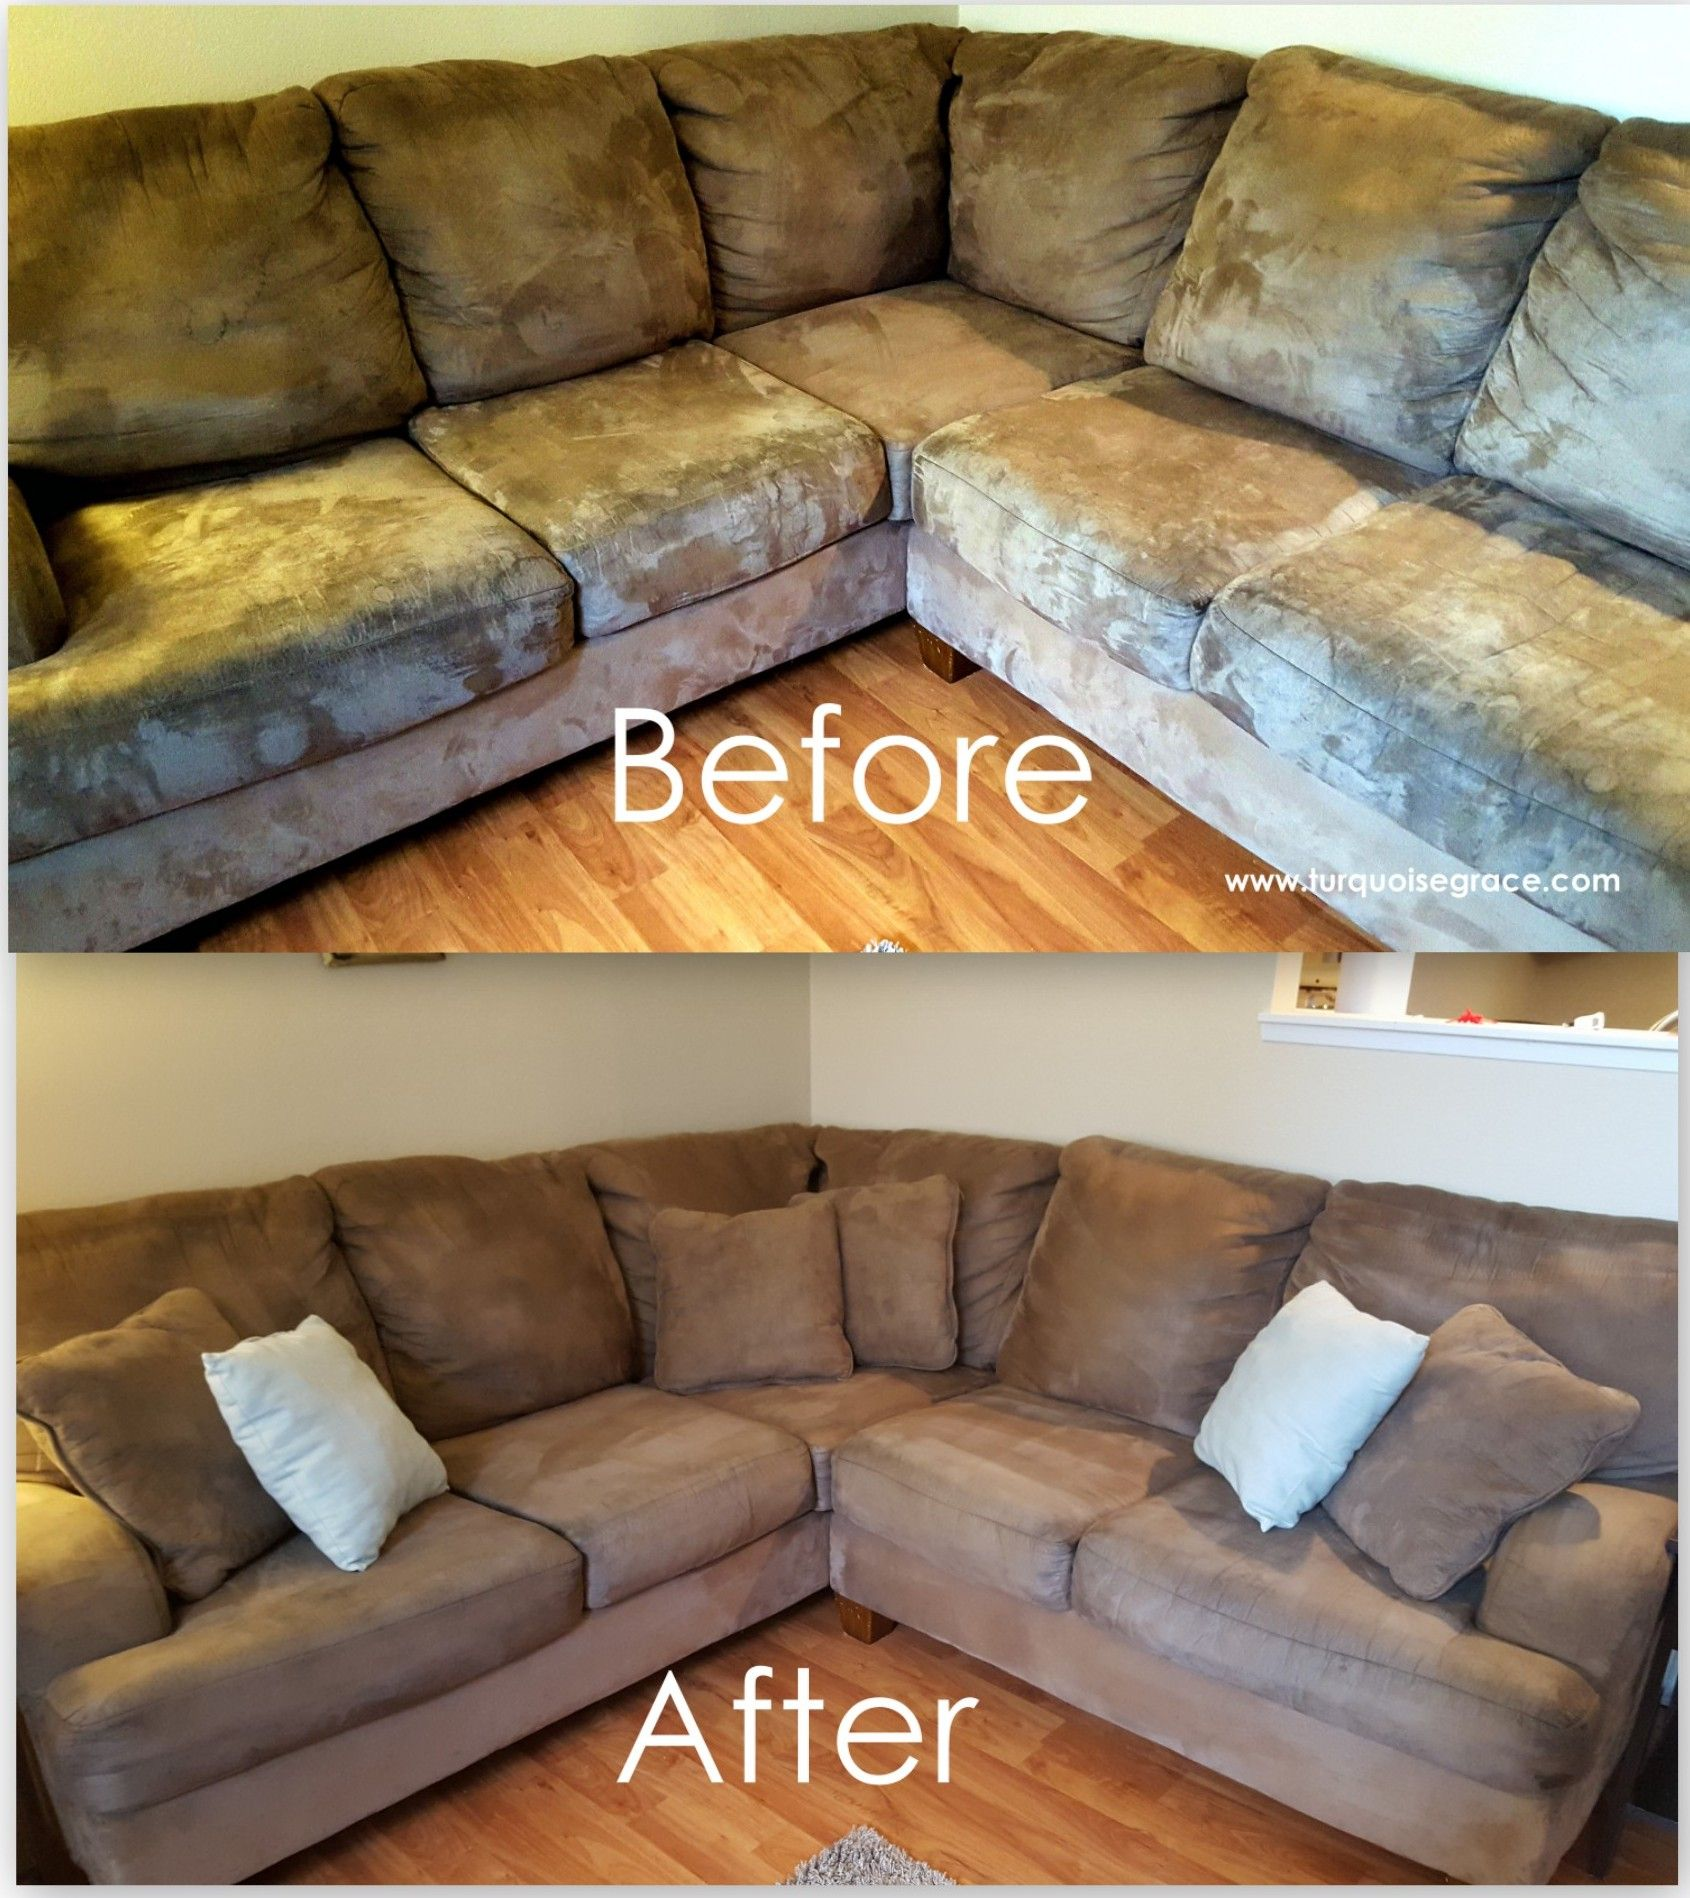 How To Clean A Microfiber Couch Microfiber Couch Cleaning Hacks